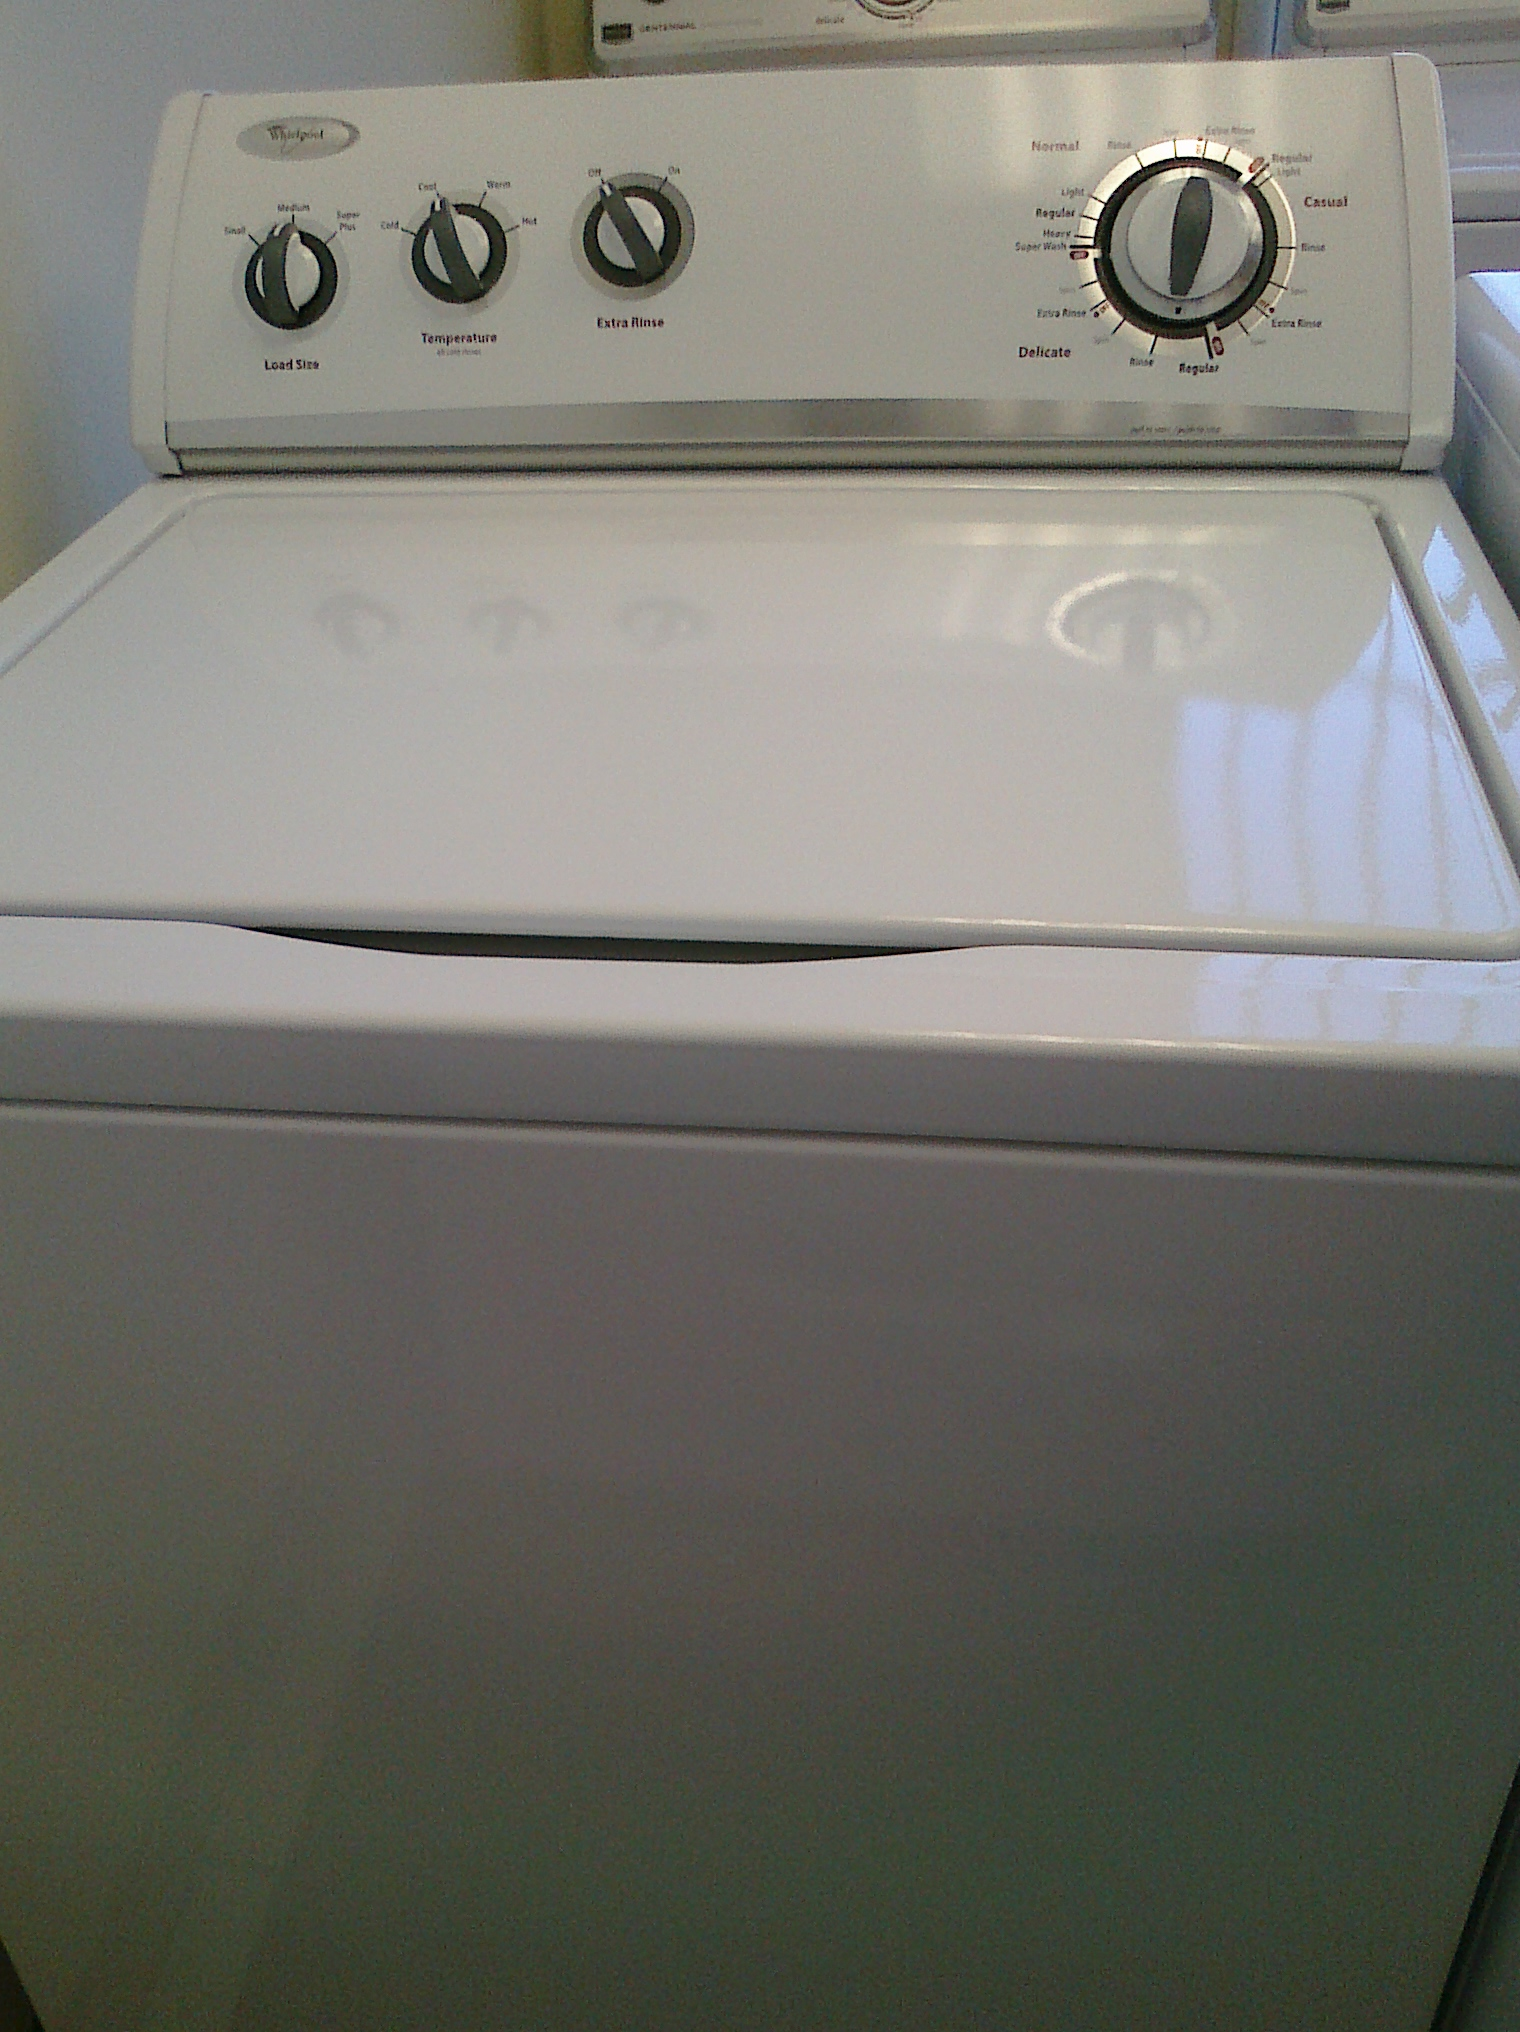 (9) Whirlpool WTW5200VQ Top Load Washer, White